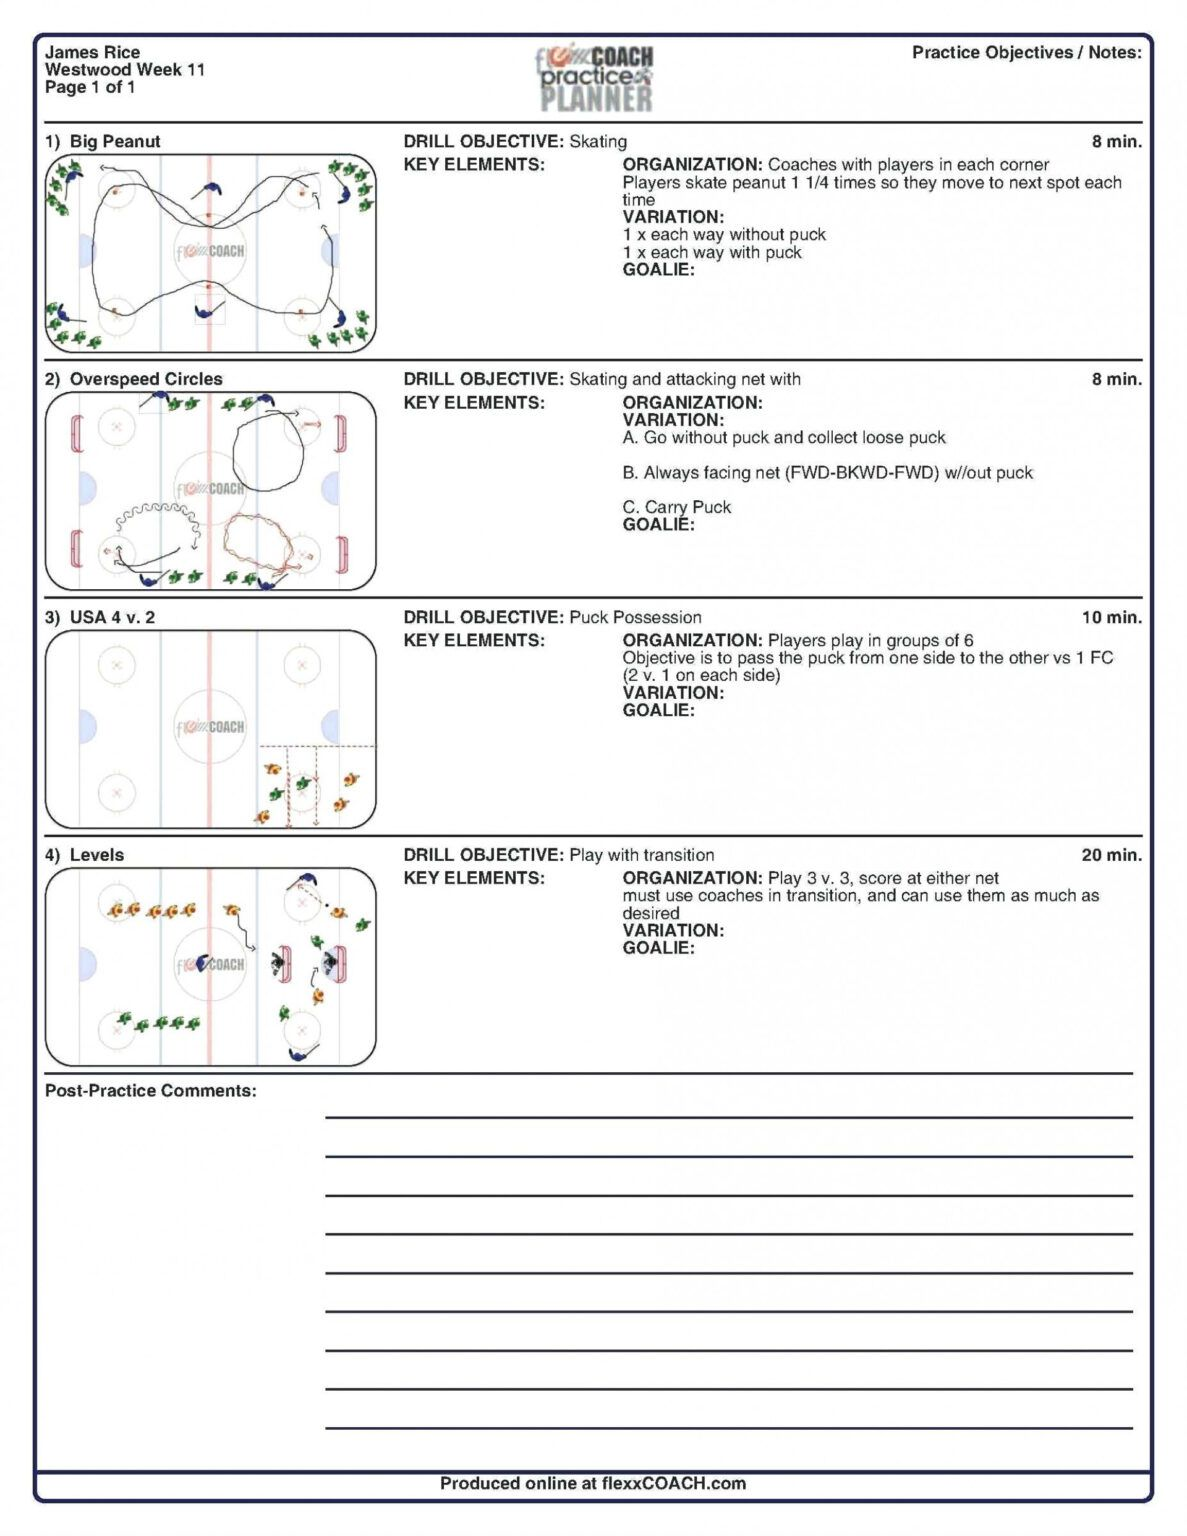 027 Template Ideas Basketball Practice Plan Templates Luxury Within Blank Hockey Prac In 2020 Soccer Practice Plans Basketball Practice Plans Volleyball Practice Plans